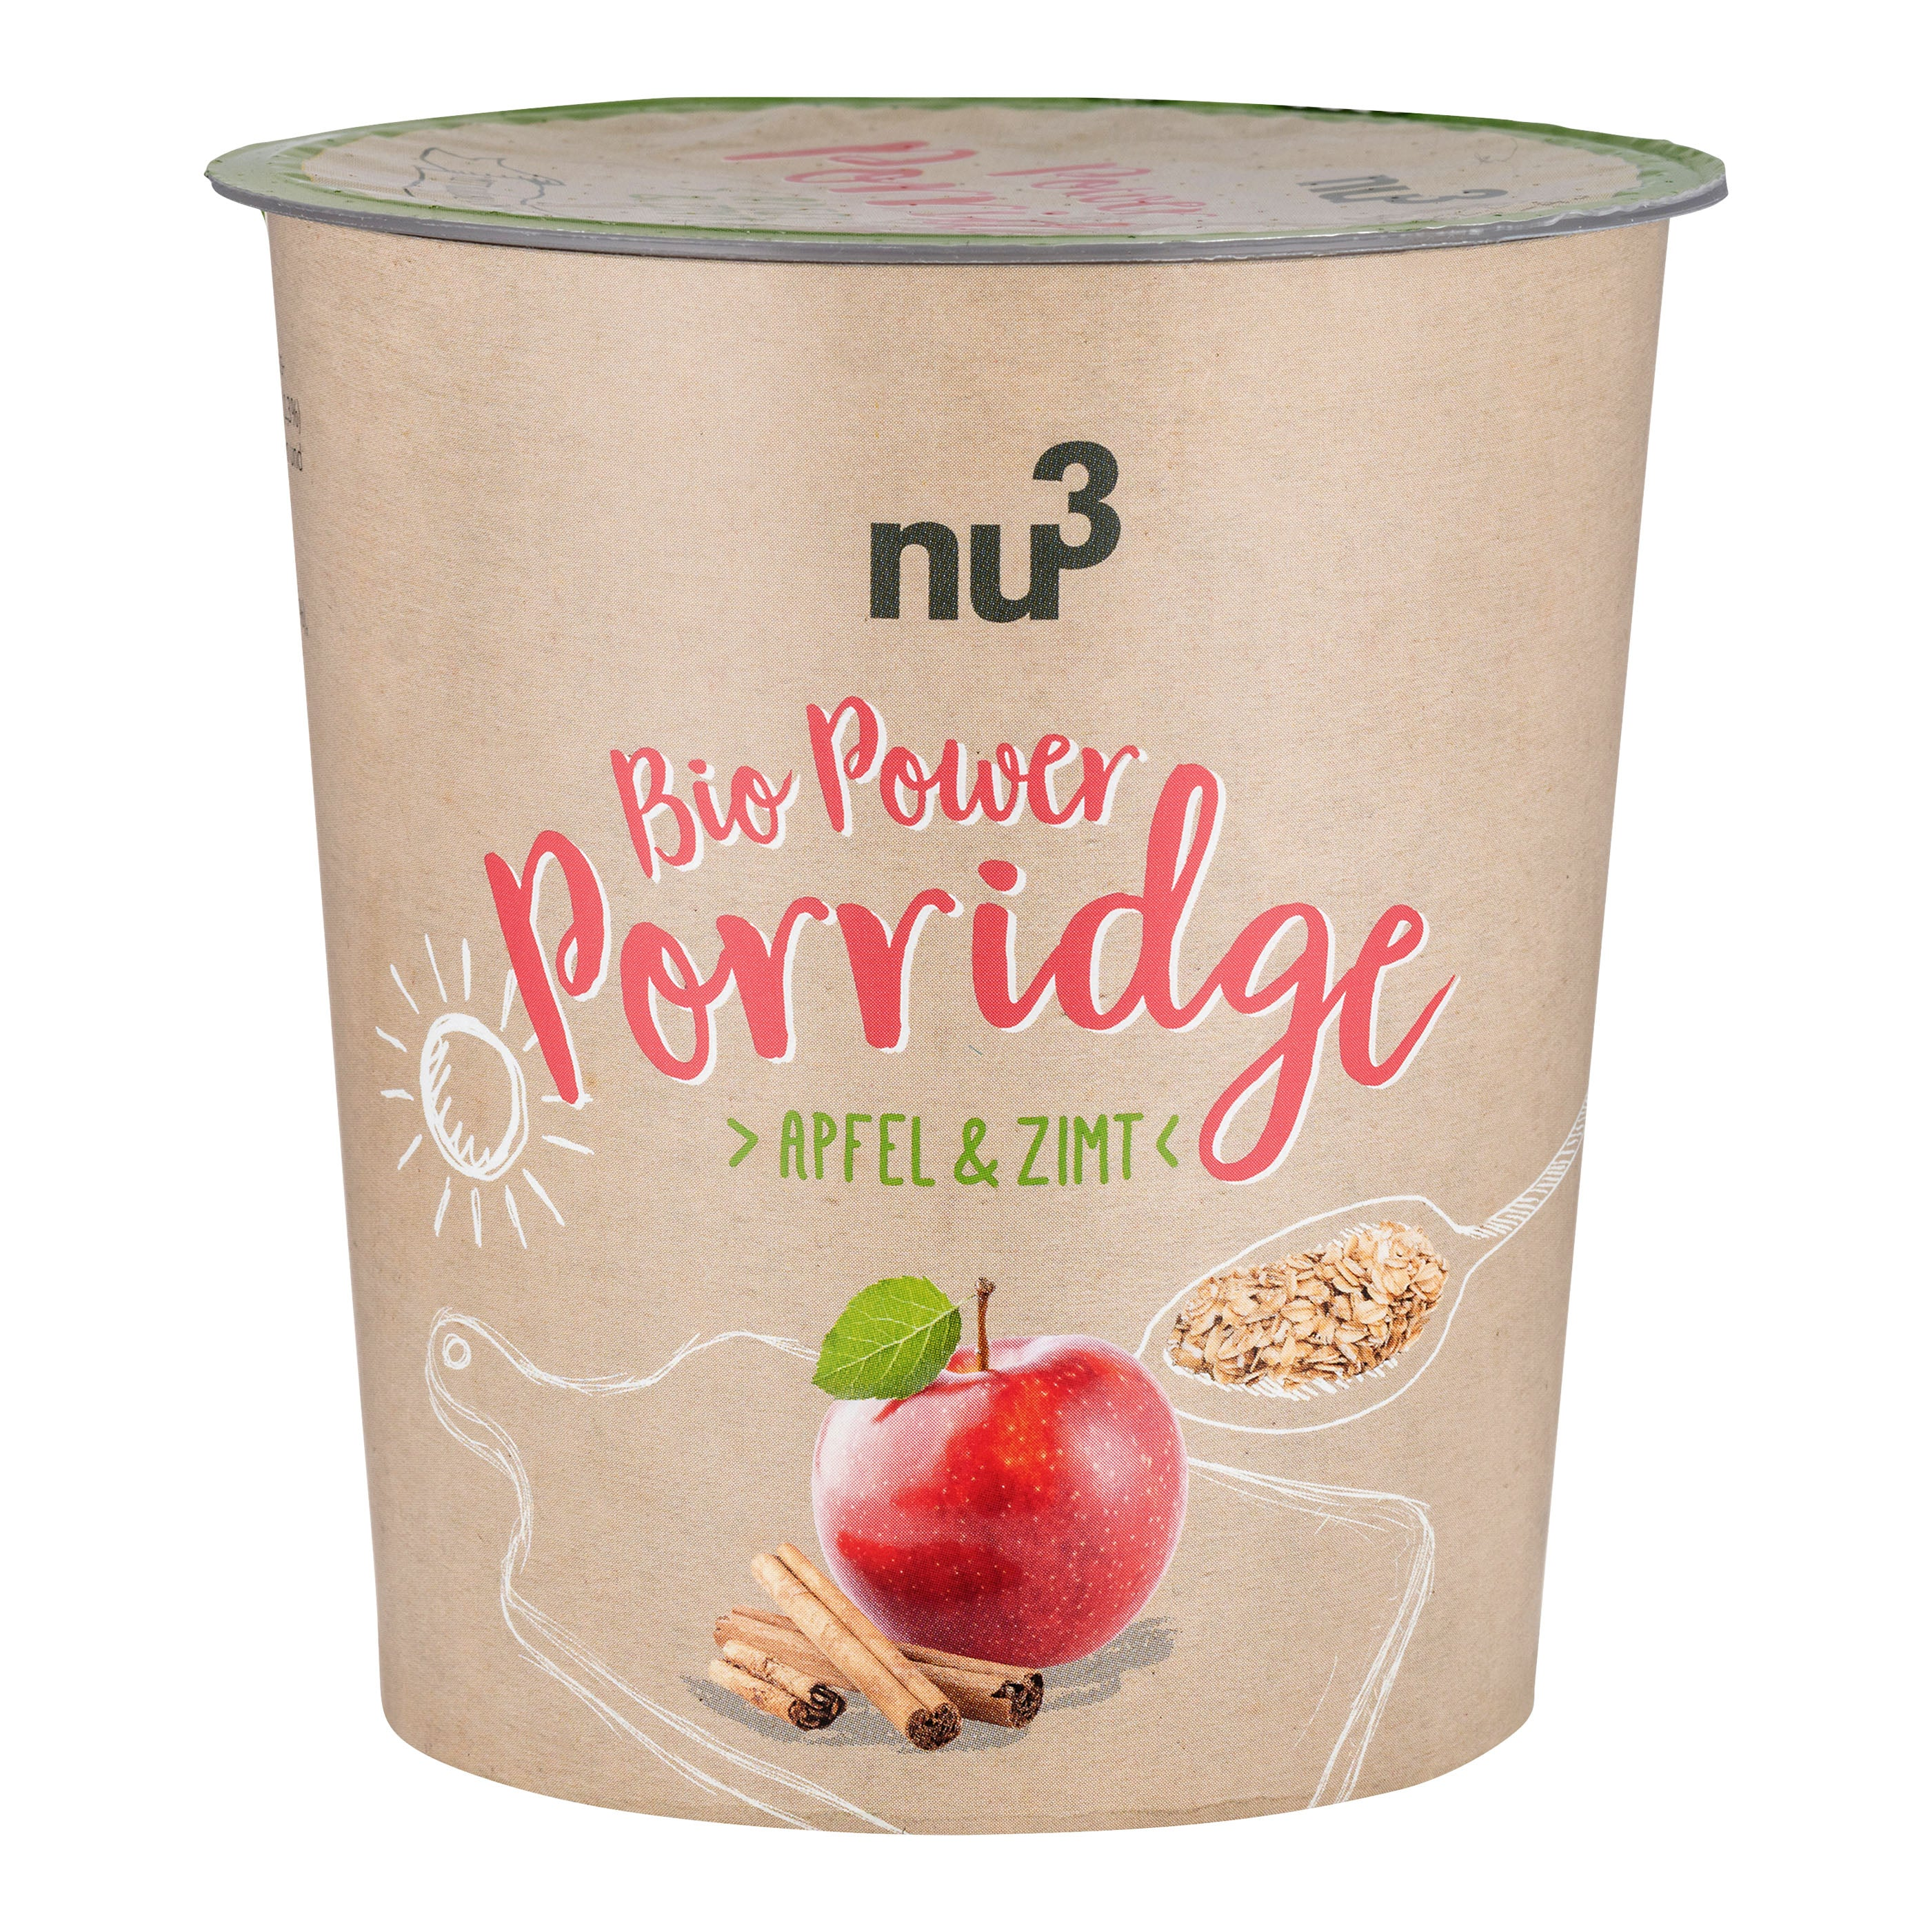 nu3 Bio Power Porridge Apfel-Zimt / 45 g